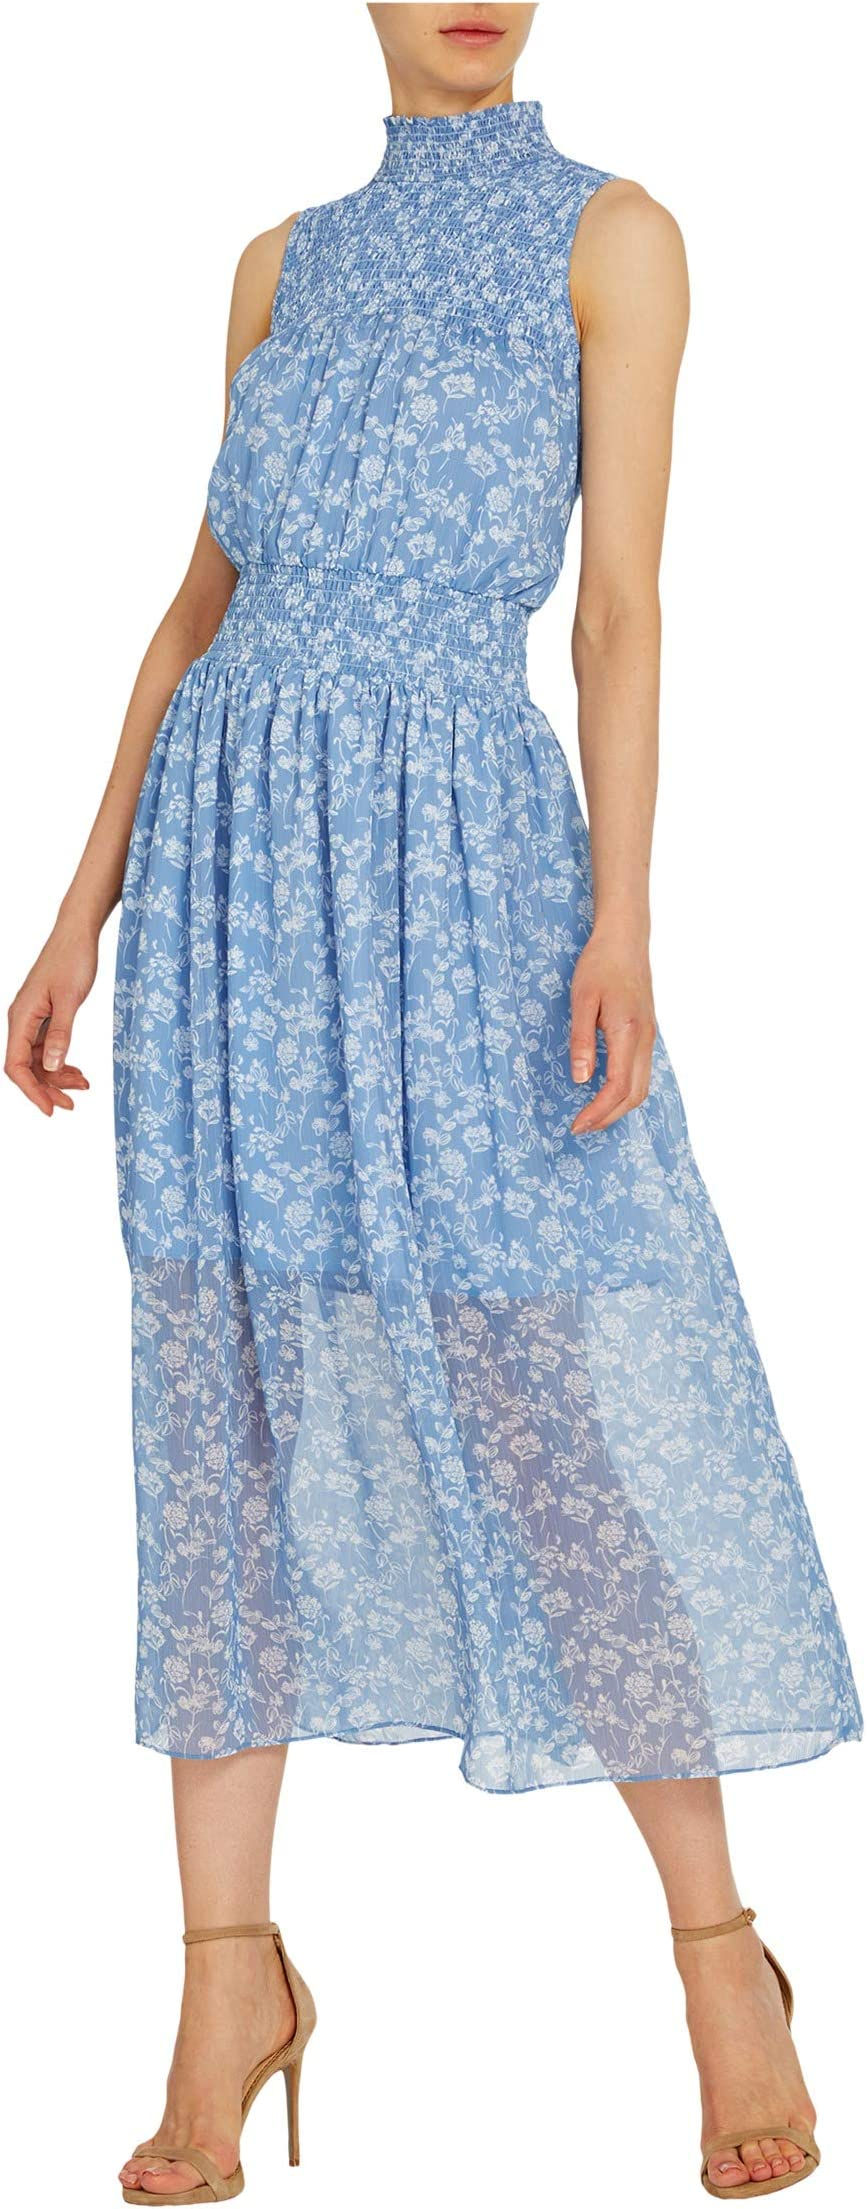 ml monique lhuillier. Sleeveless Floral Printed Midi Dress w/ Smocking